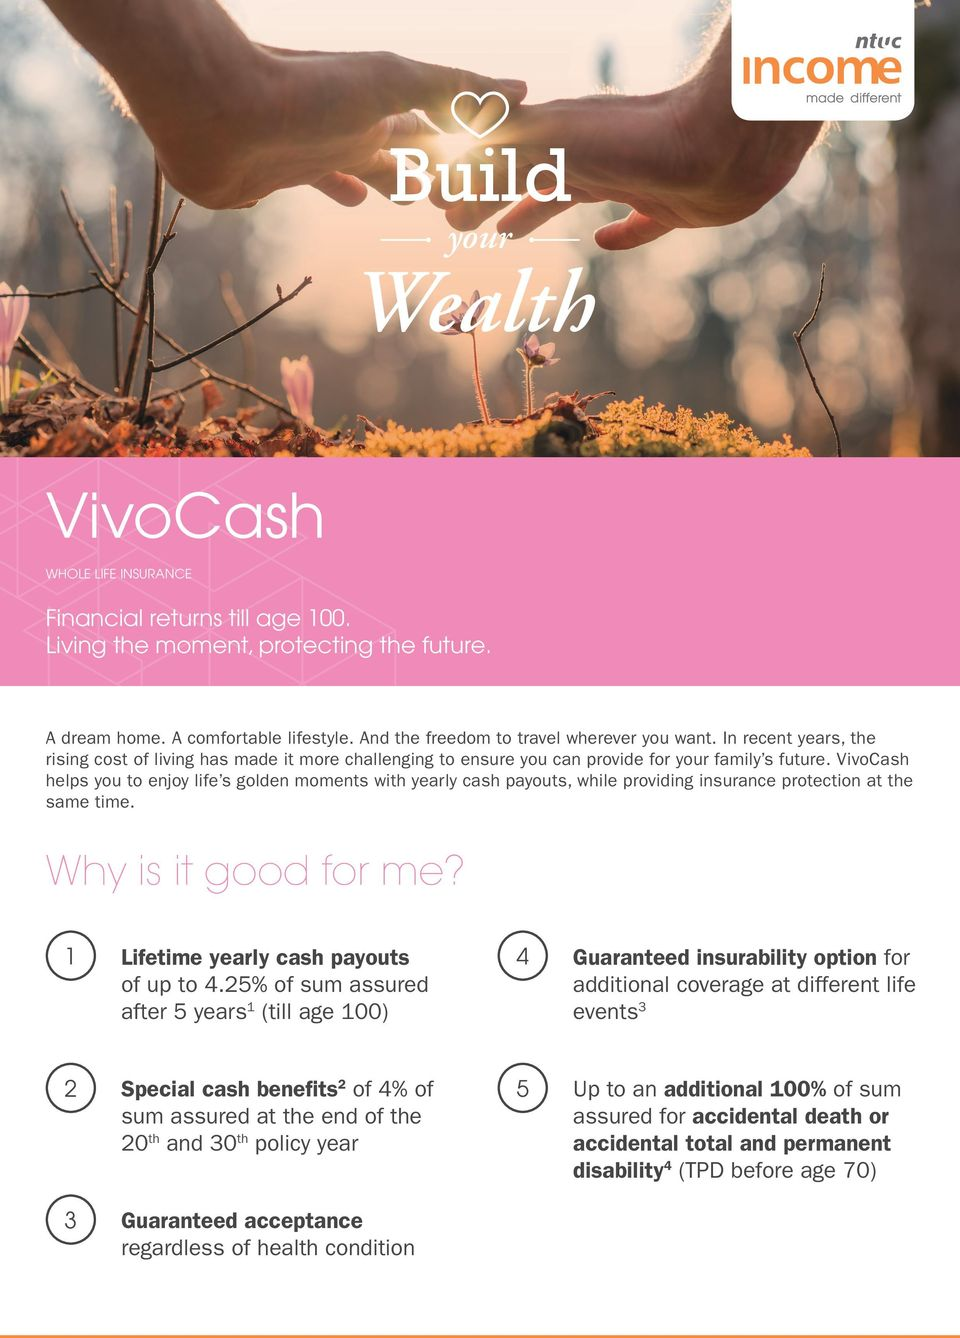 Wealth  Build  VivoCash  Why is it good for me? your